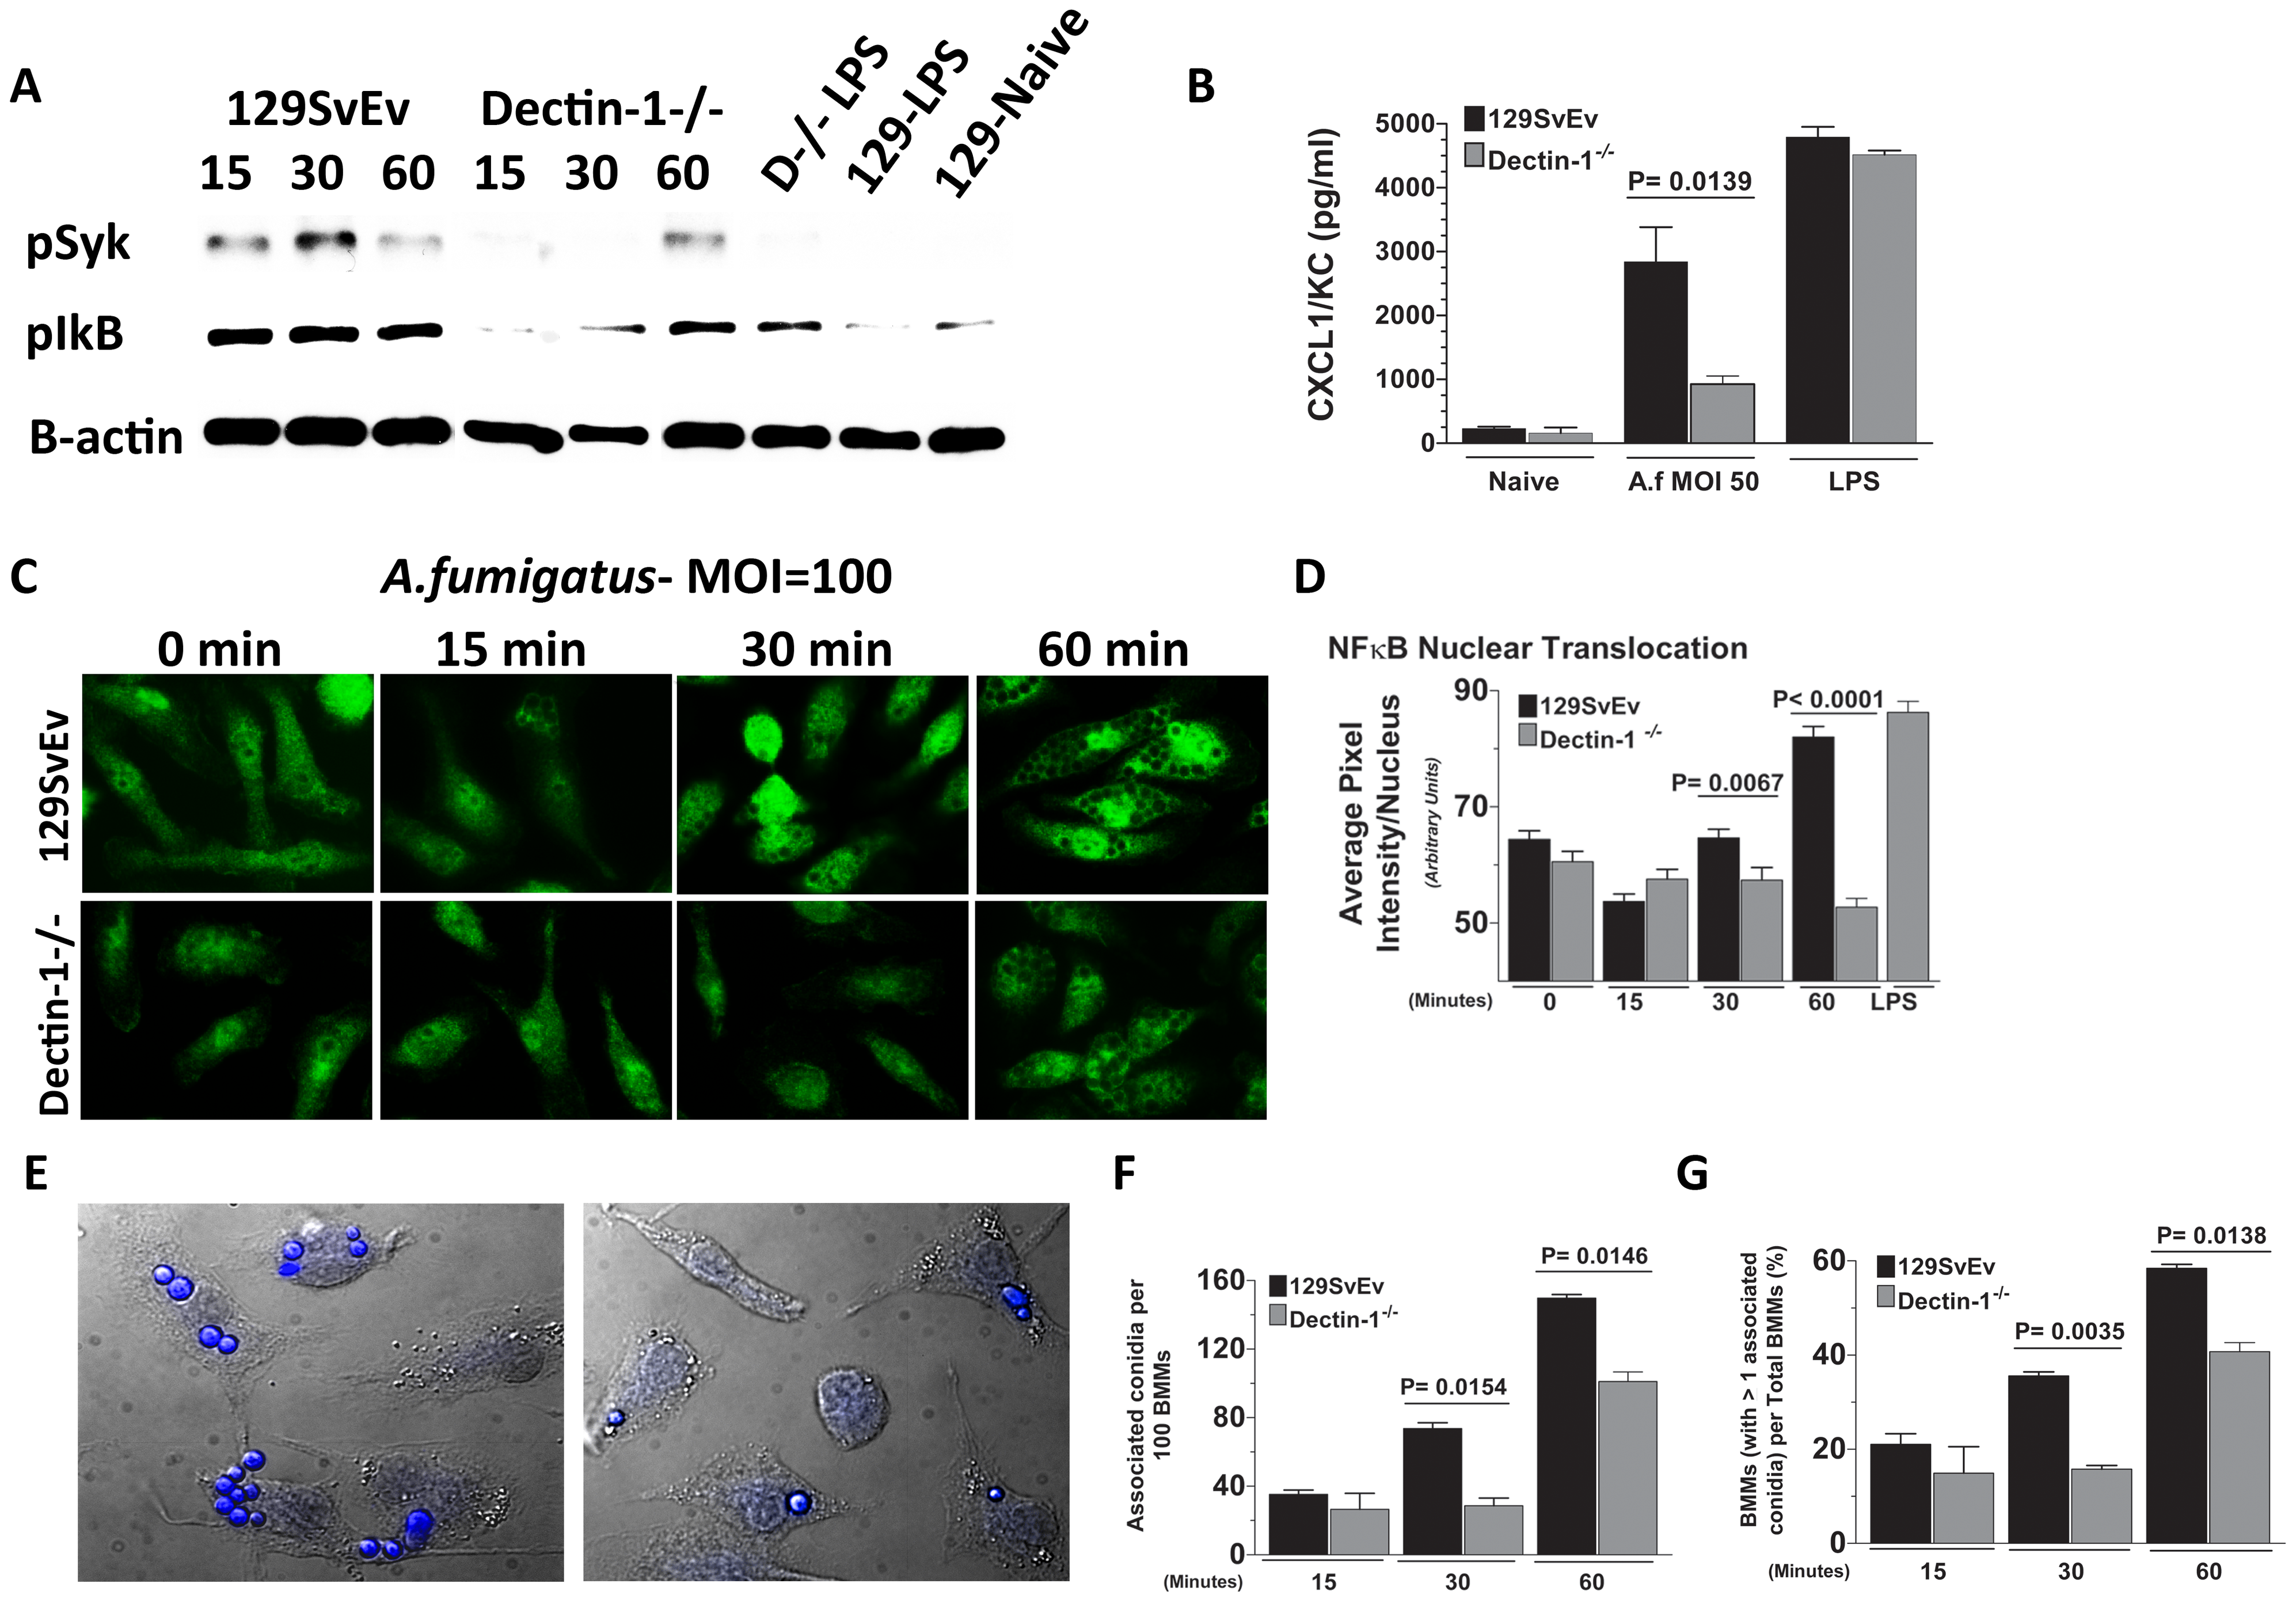 Role of Dectin-1 in activation of bone marrow-derived macrophages.